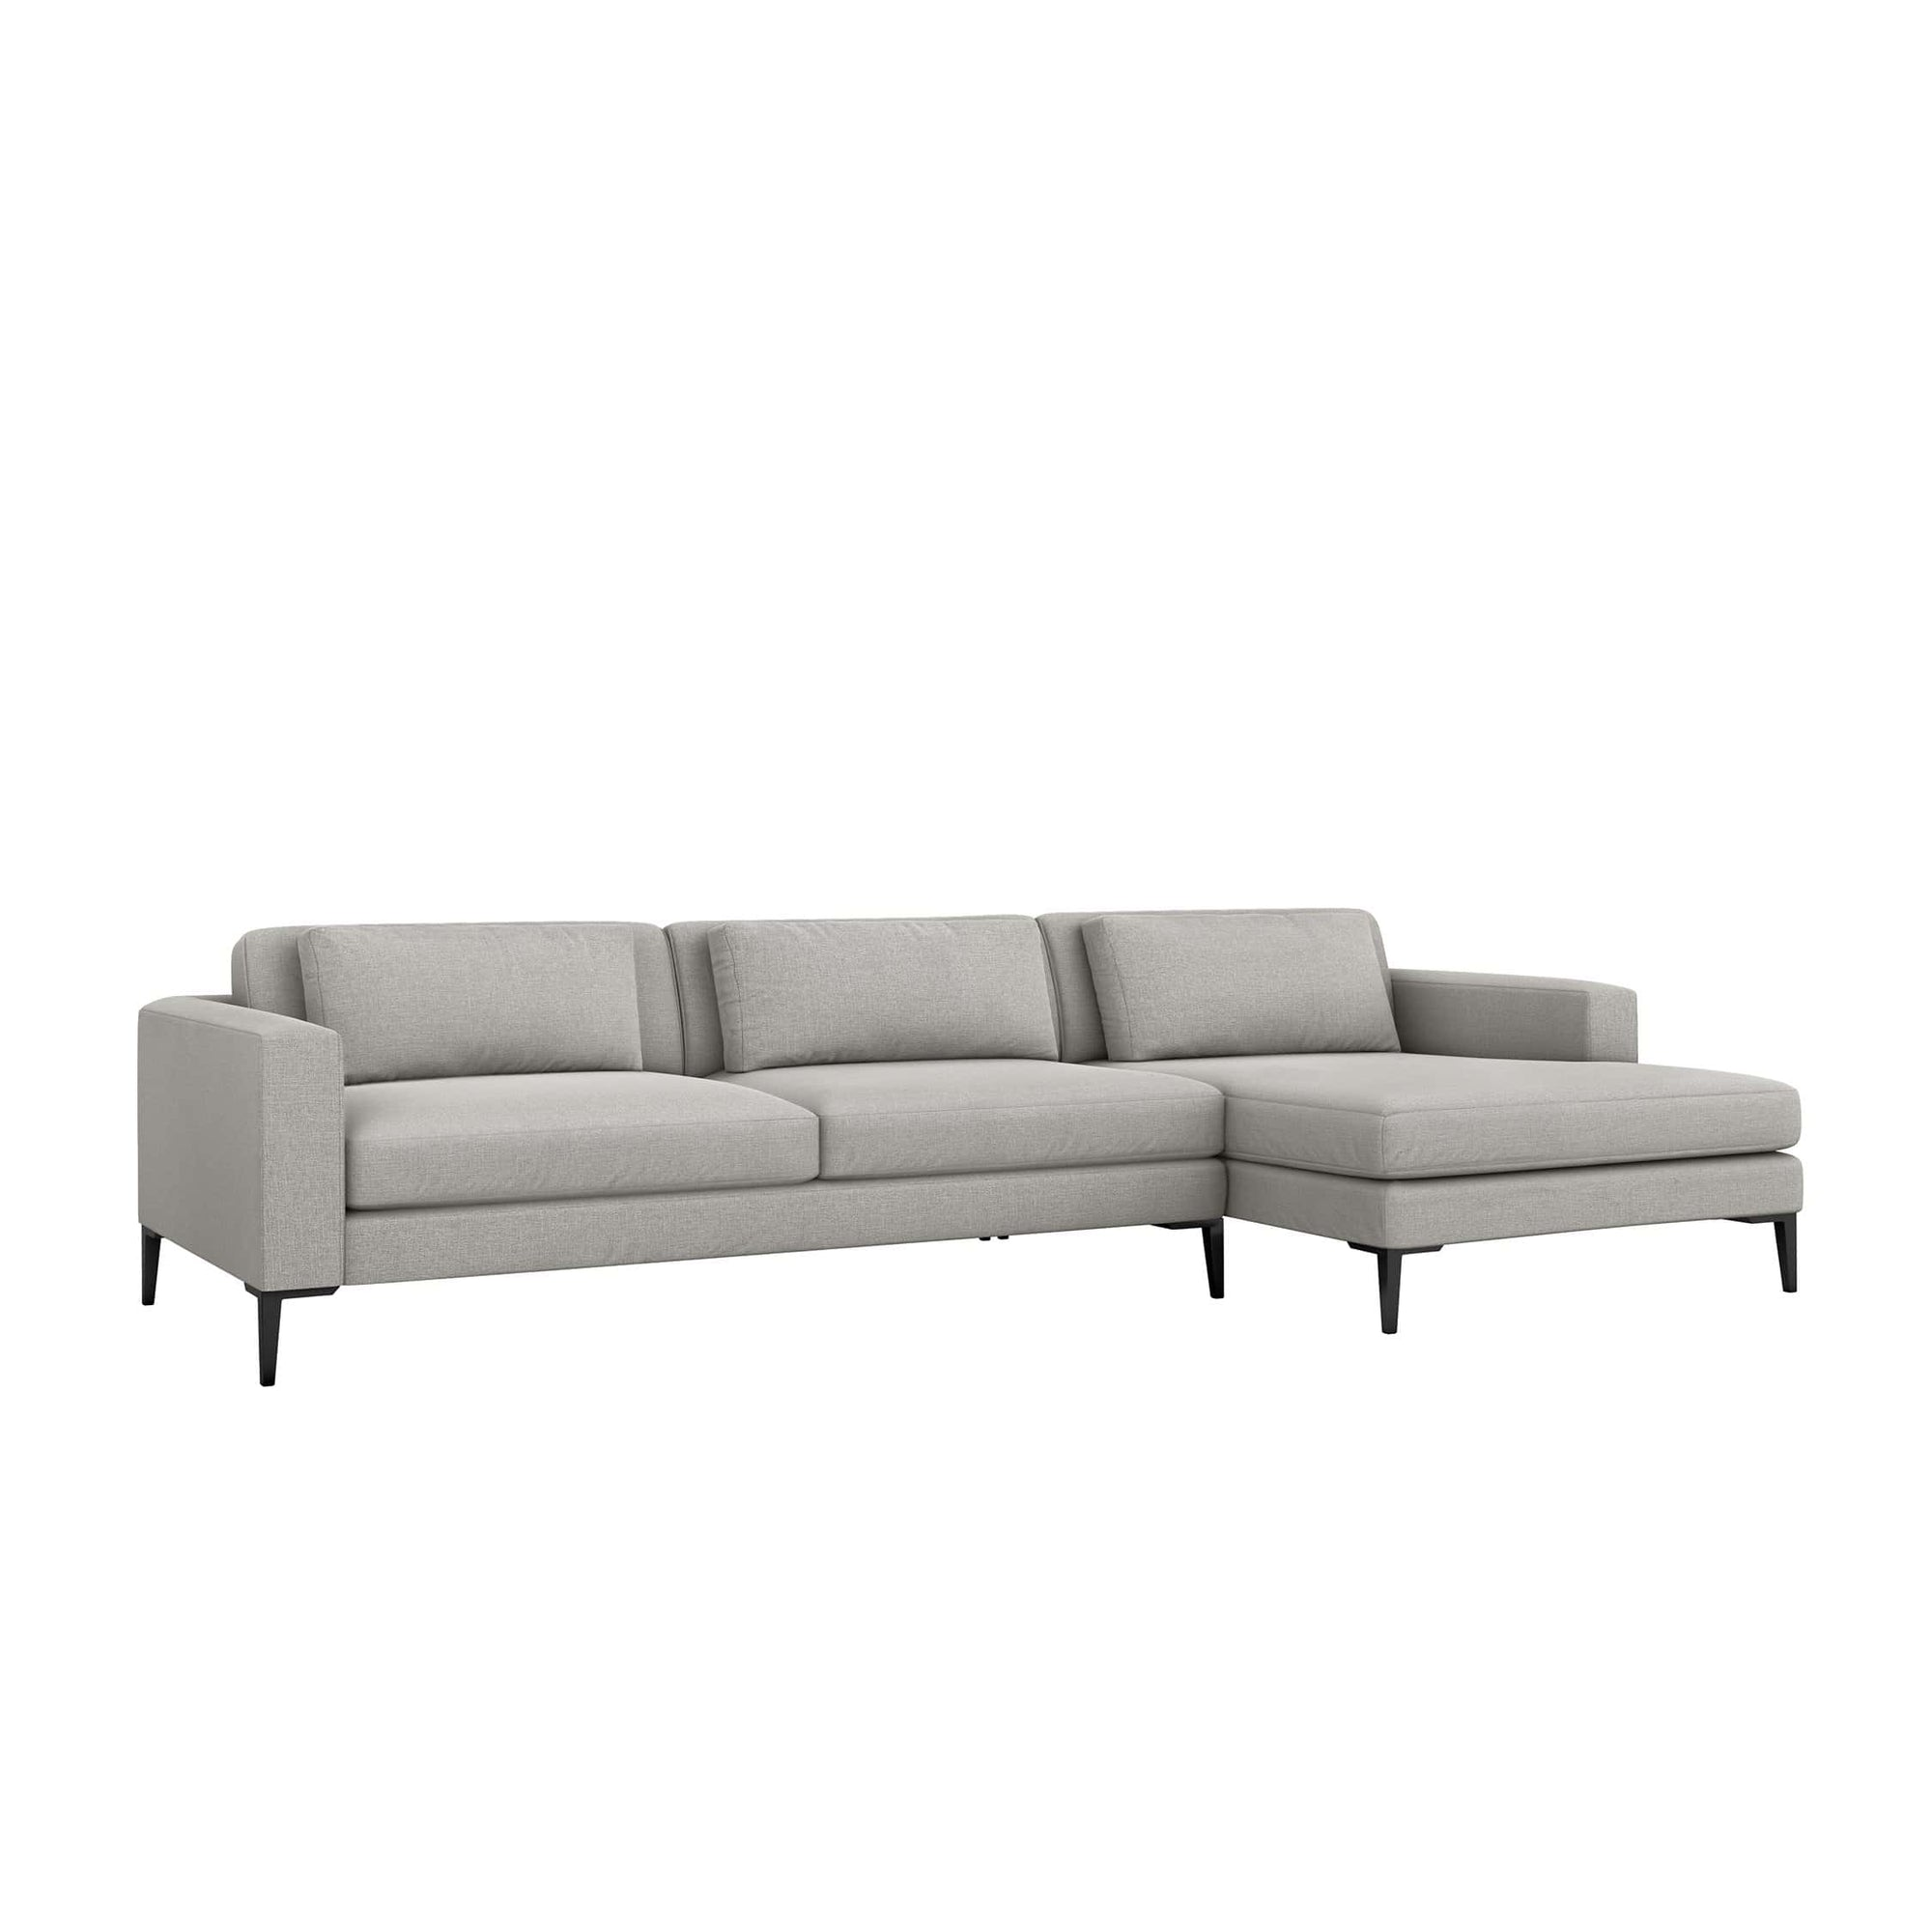 Interlude Home Interlude Home Izzy Right Chaise 2 Piece Sectional - Light Gray 199014-6